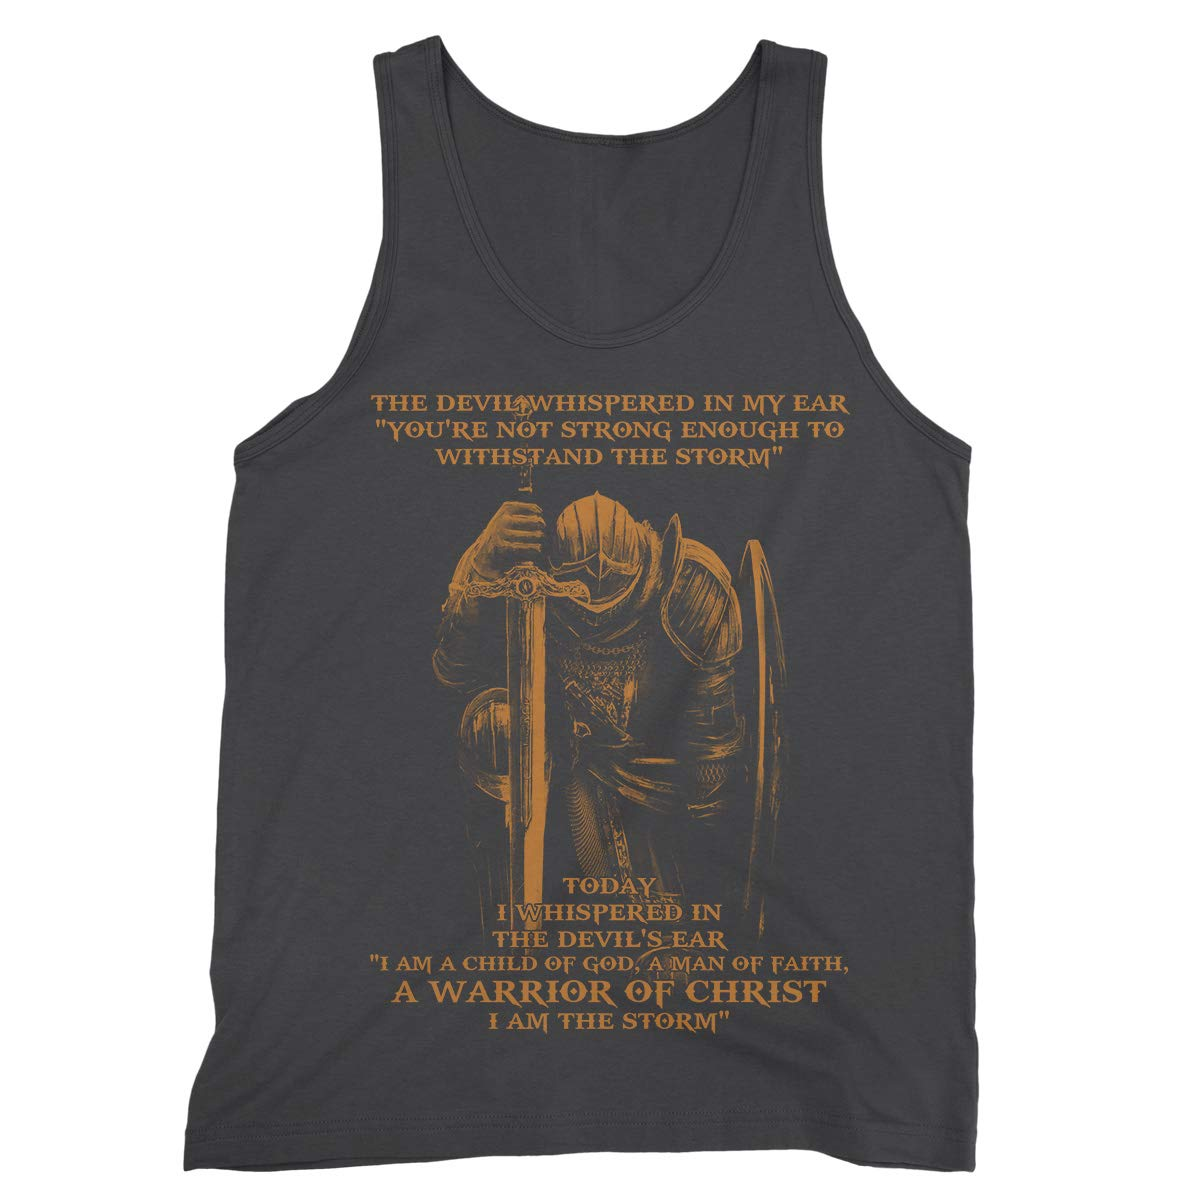 The Devil Whispered in My Ear Youre Not Strong Enough to Withstand The Storm Tank Tops